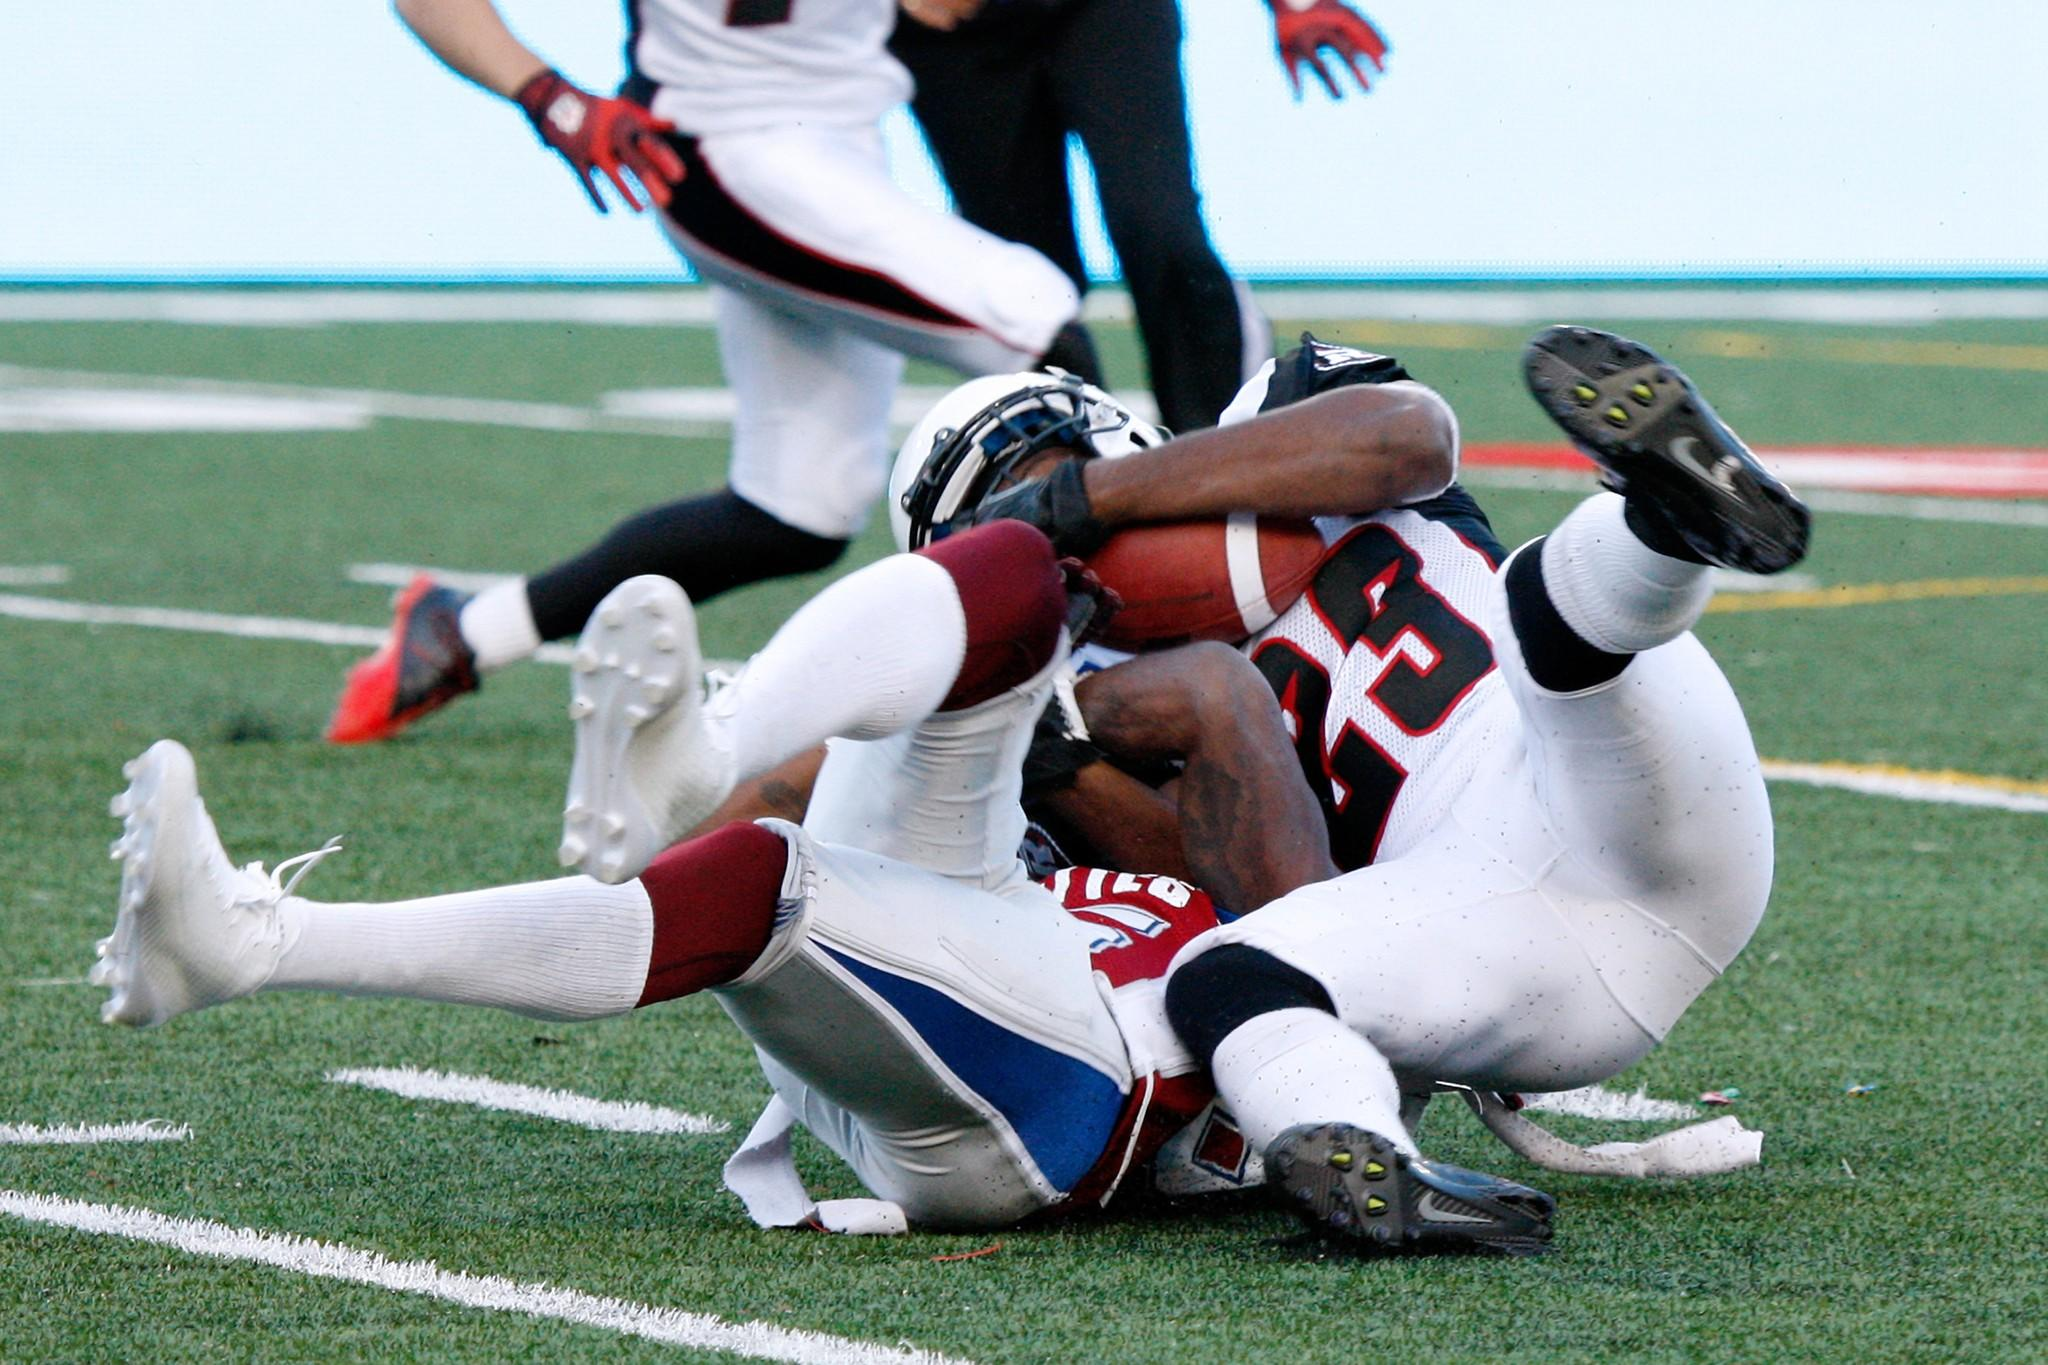 Seth Williams of the Ottawa Redblacks, right, wrestles for the ball with Chad Johnson of the Montreal Alouettes during the CFL game at Percival Molson Stadium on June 20, 2014 in Montreal, Quebec, Canada.